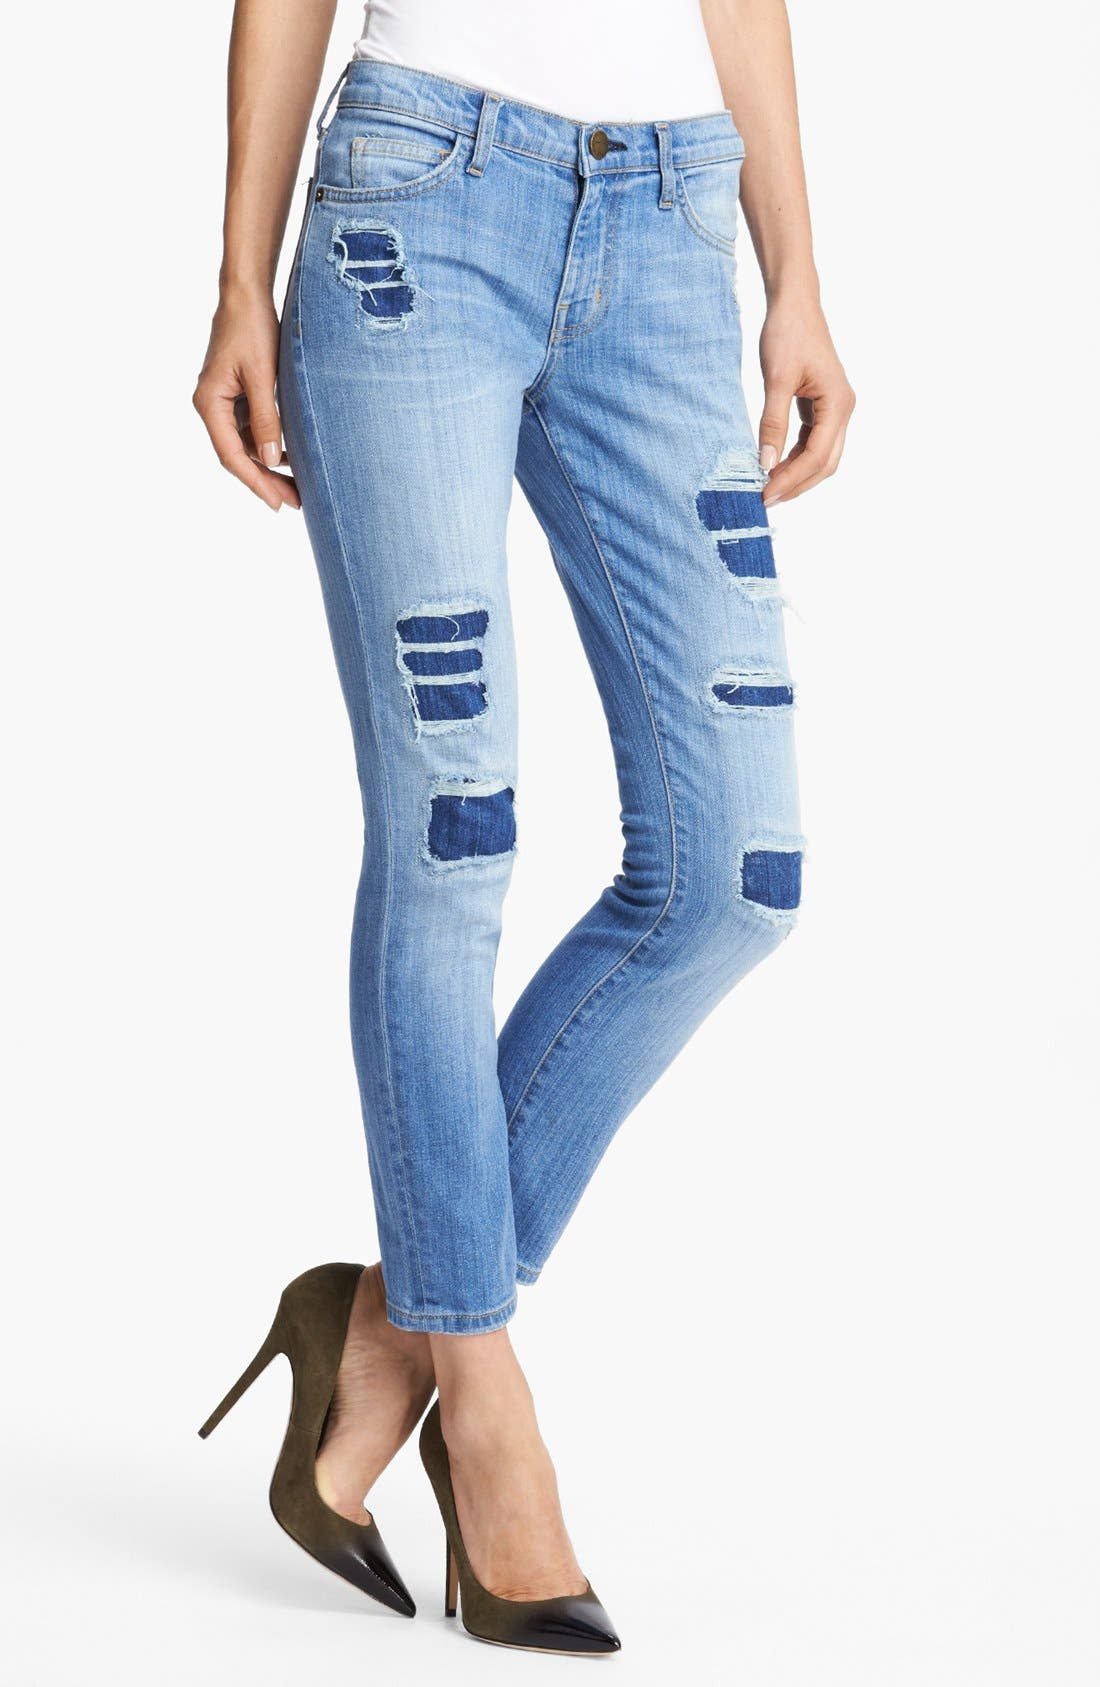 Alternate Image 1 Selected - Current/Elliott 'The Stiletto' Stretch Jeans (Omaha Patch Repair)